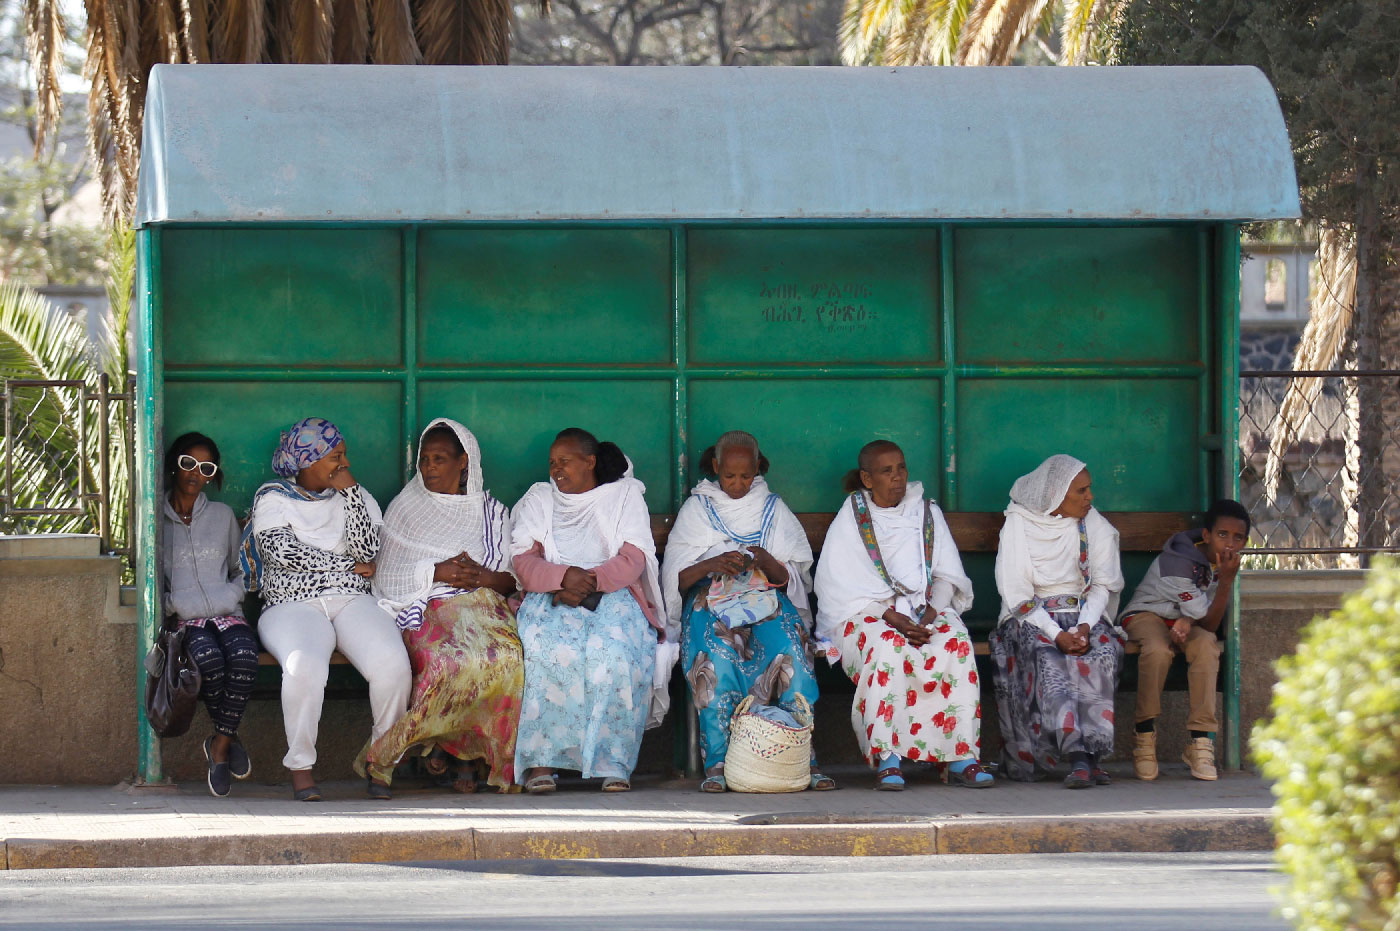 Passengers wait for the bus at a stop along a street in Asmara, Eritrea.